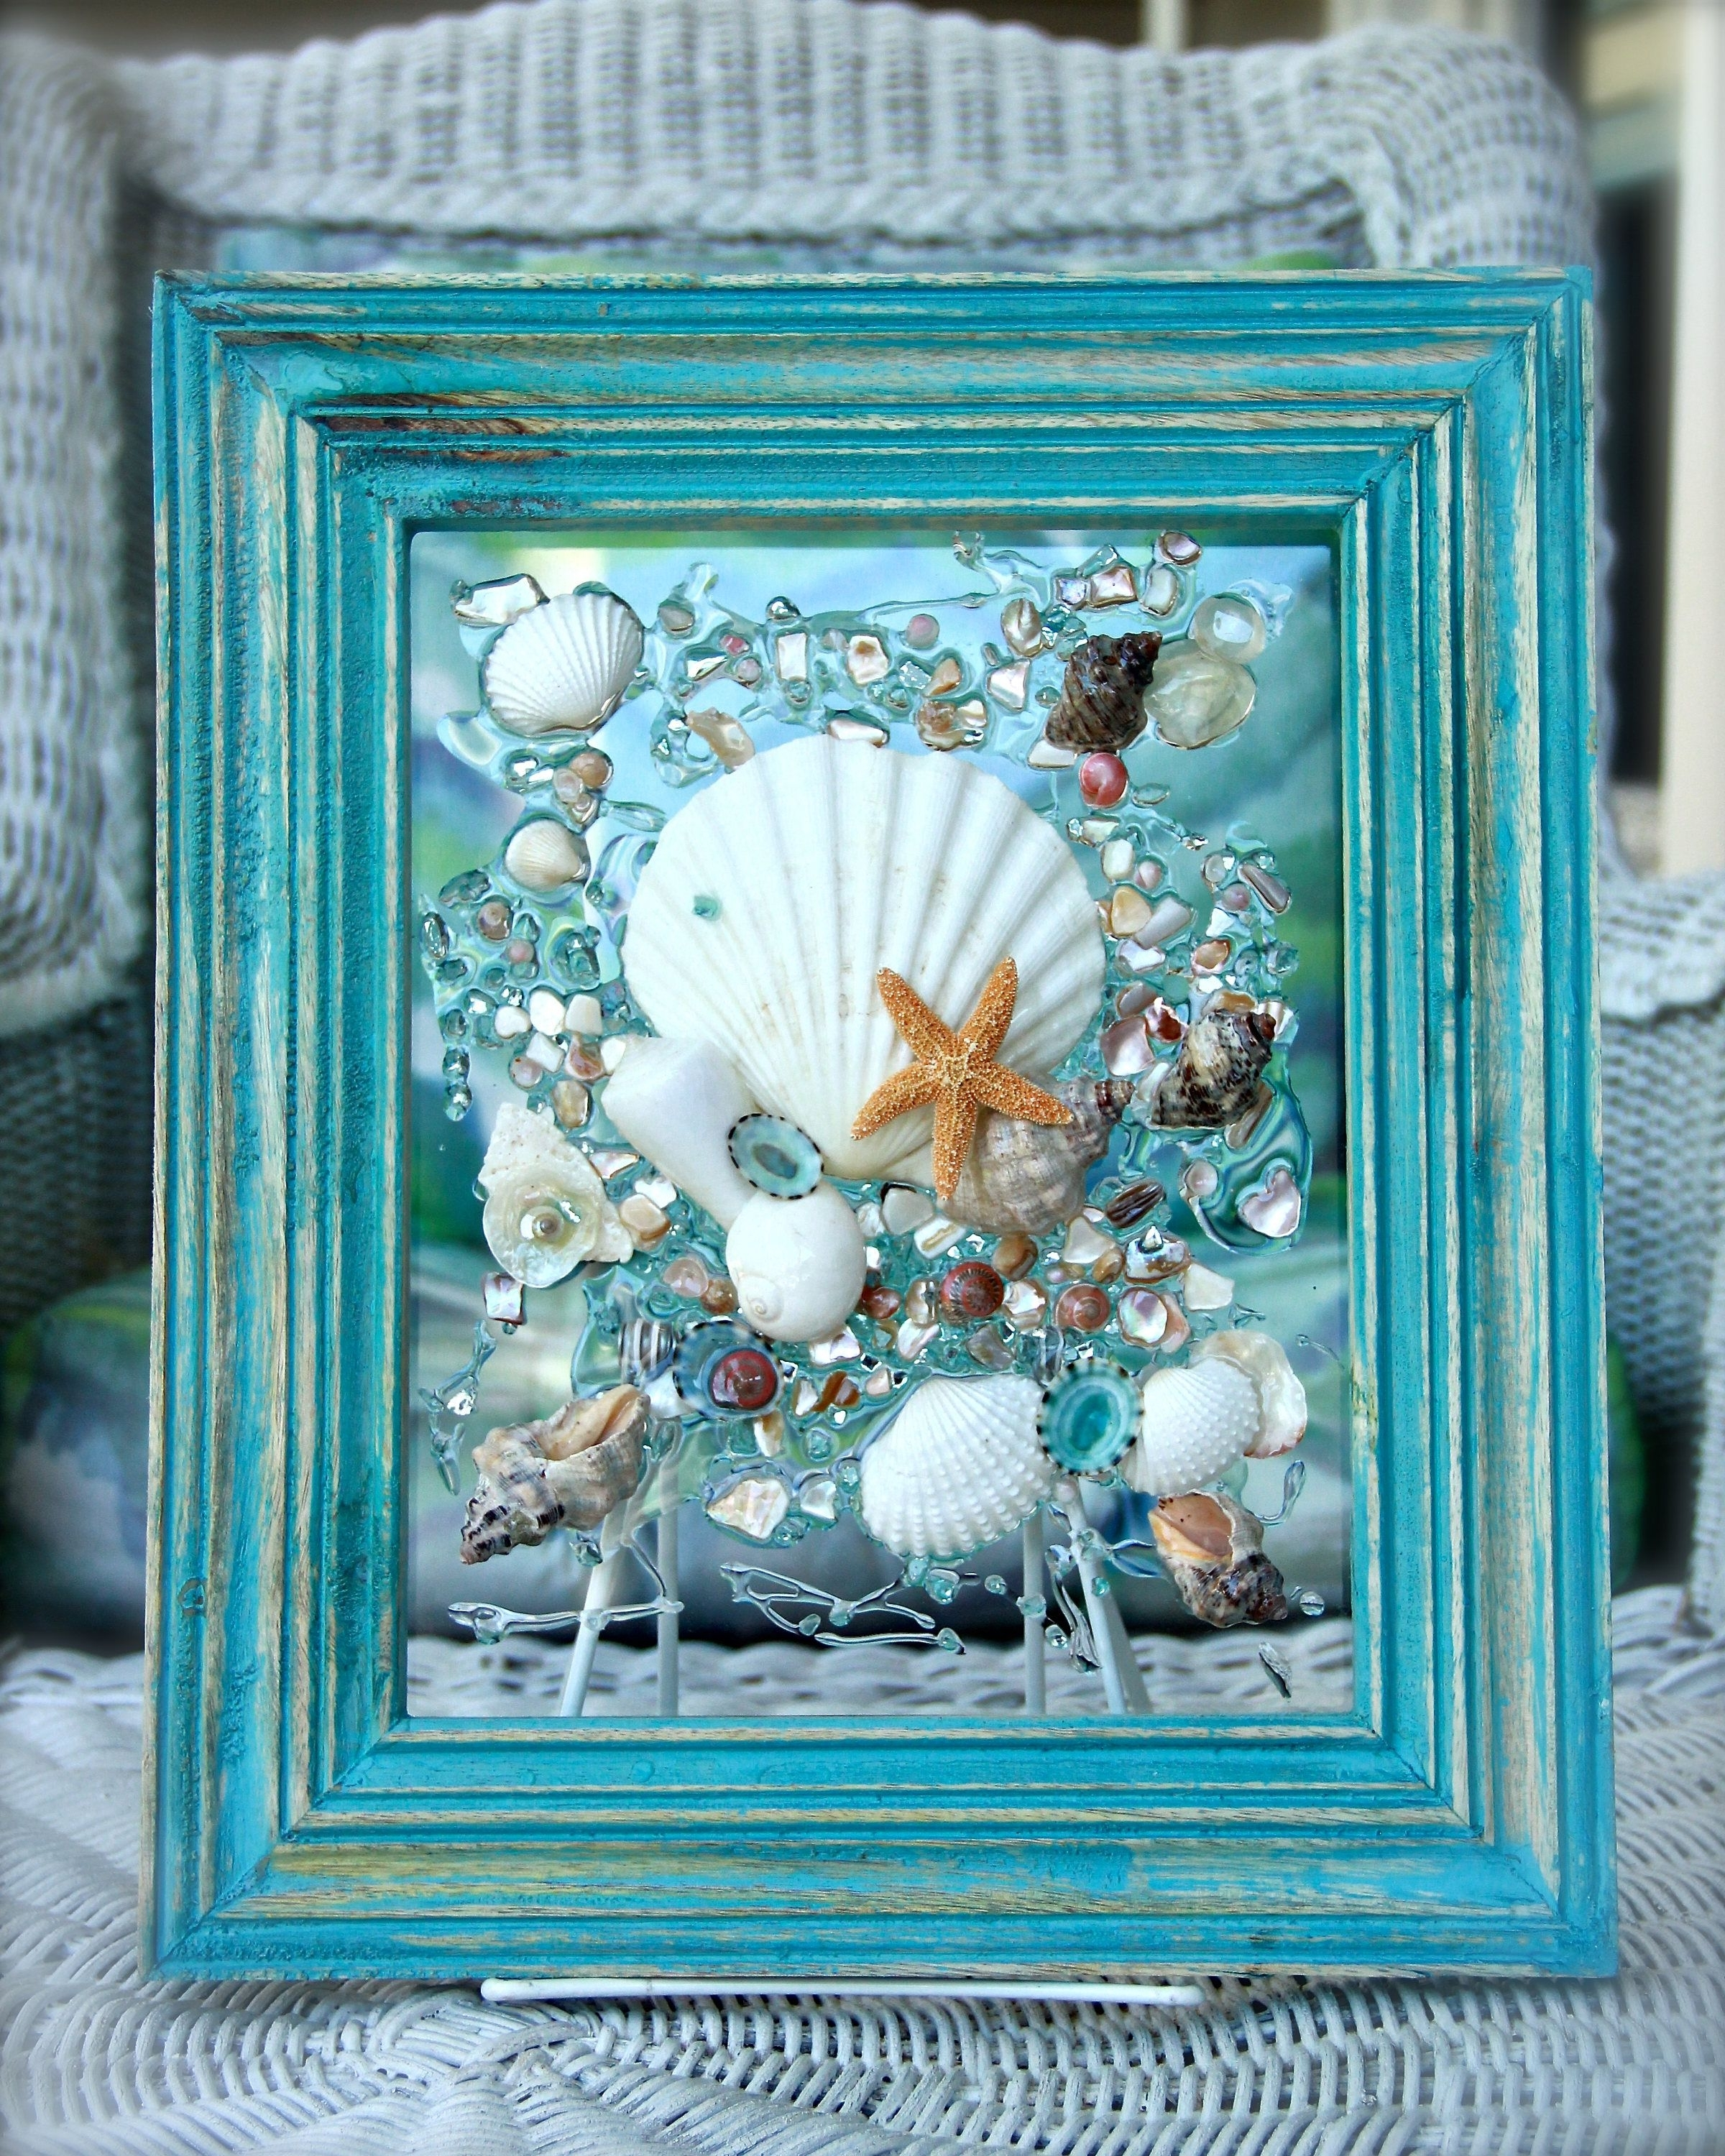 Wall Art With Seashells Pertaining To Most Recently Released Beach Decor Of Seashell Art, Beach Bathroom Decor Wall Hanging (View 15 of 15)